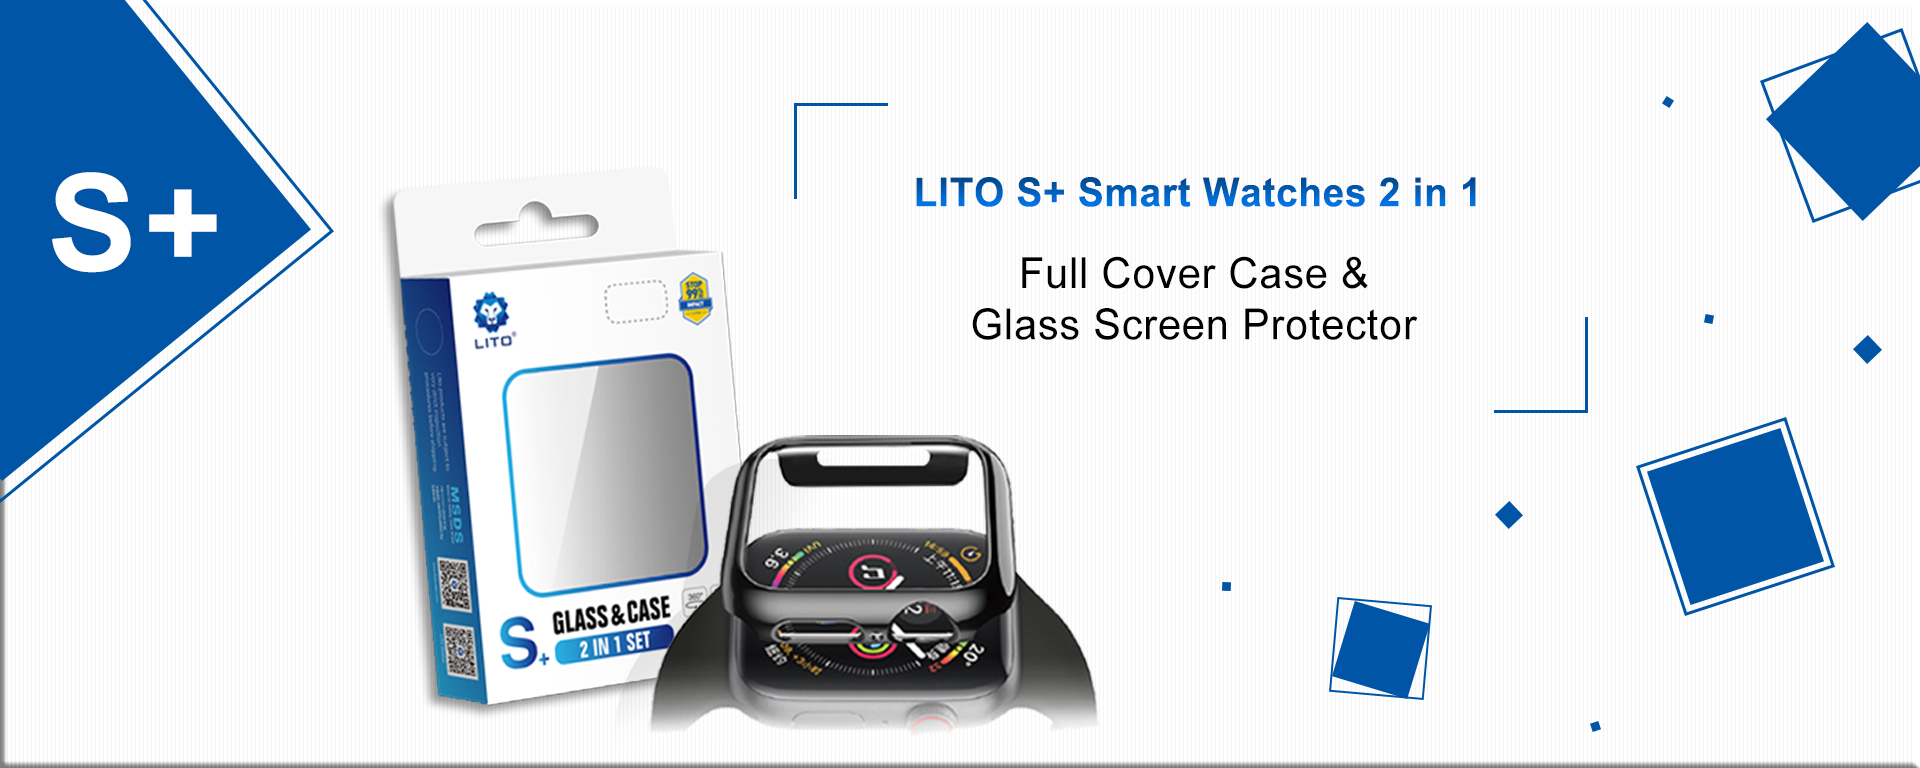 LITO S+ Full Coverage Touch Sensitive Perfect Protection Watch Case& Watch Screen Protector